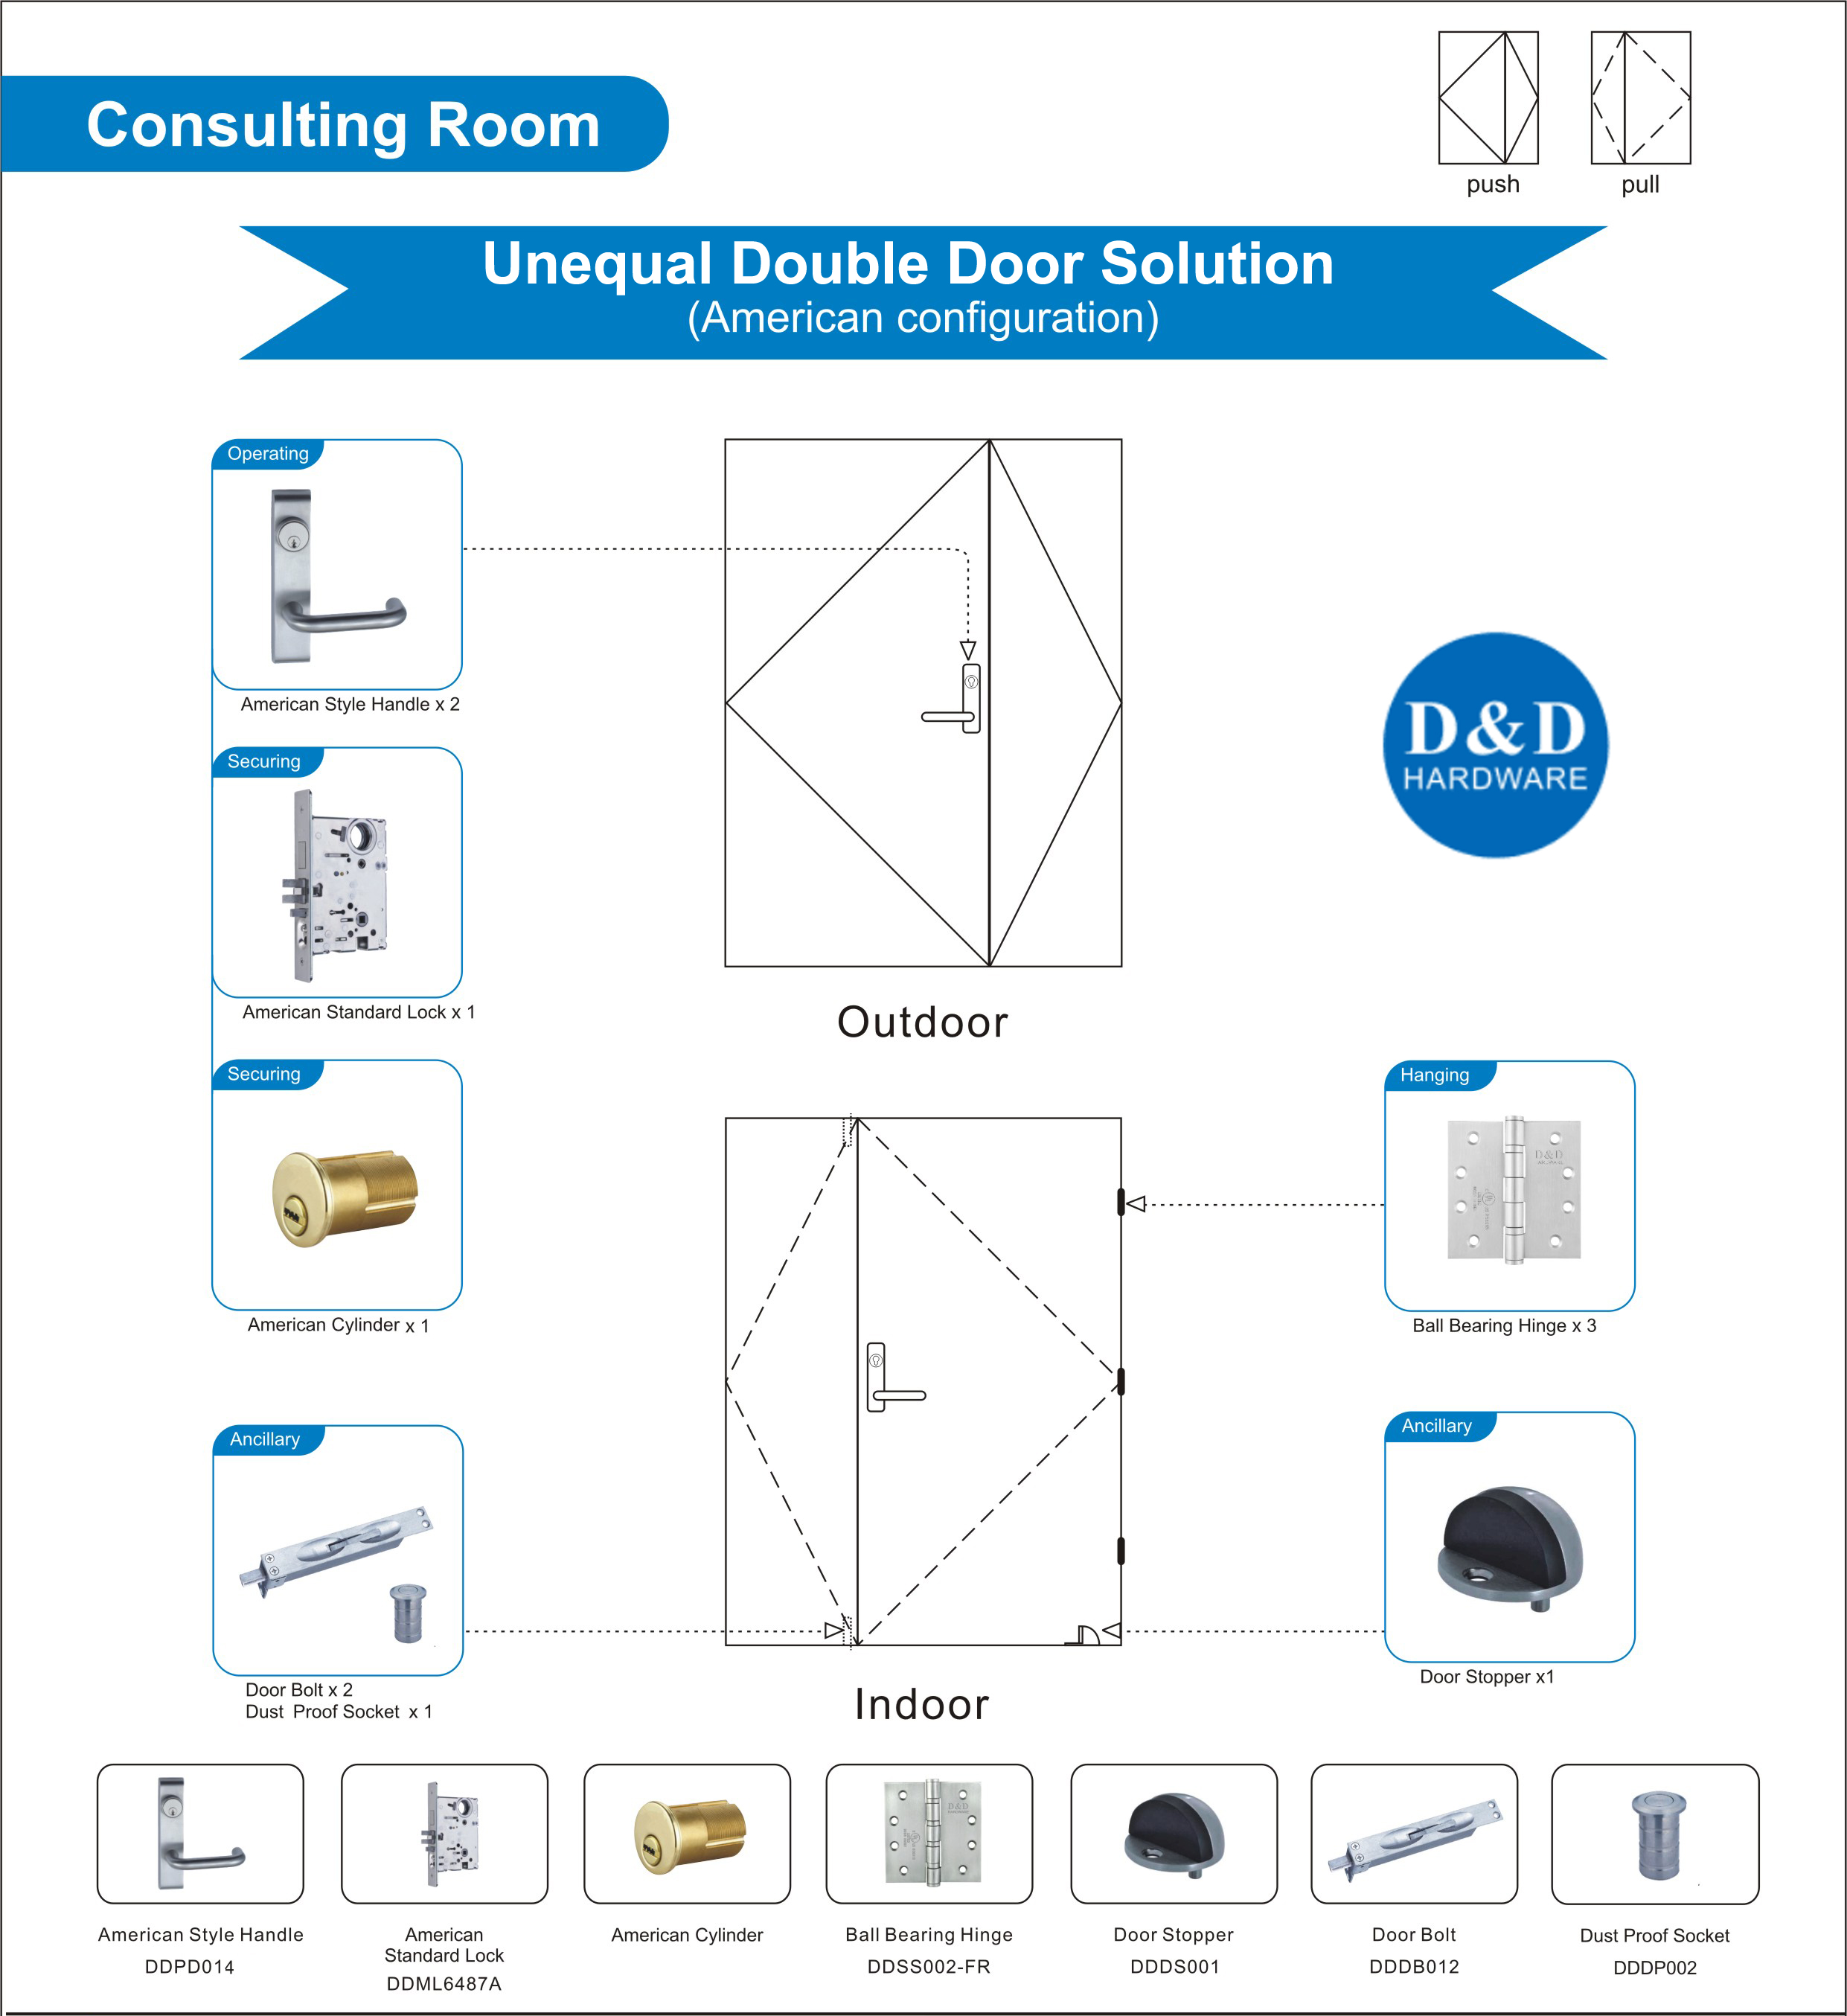 Building Hardware Solution For Consulting Room Unequal